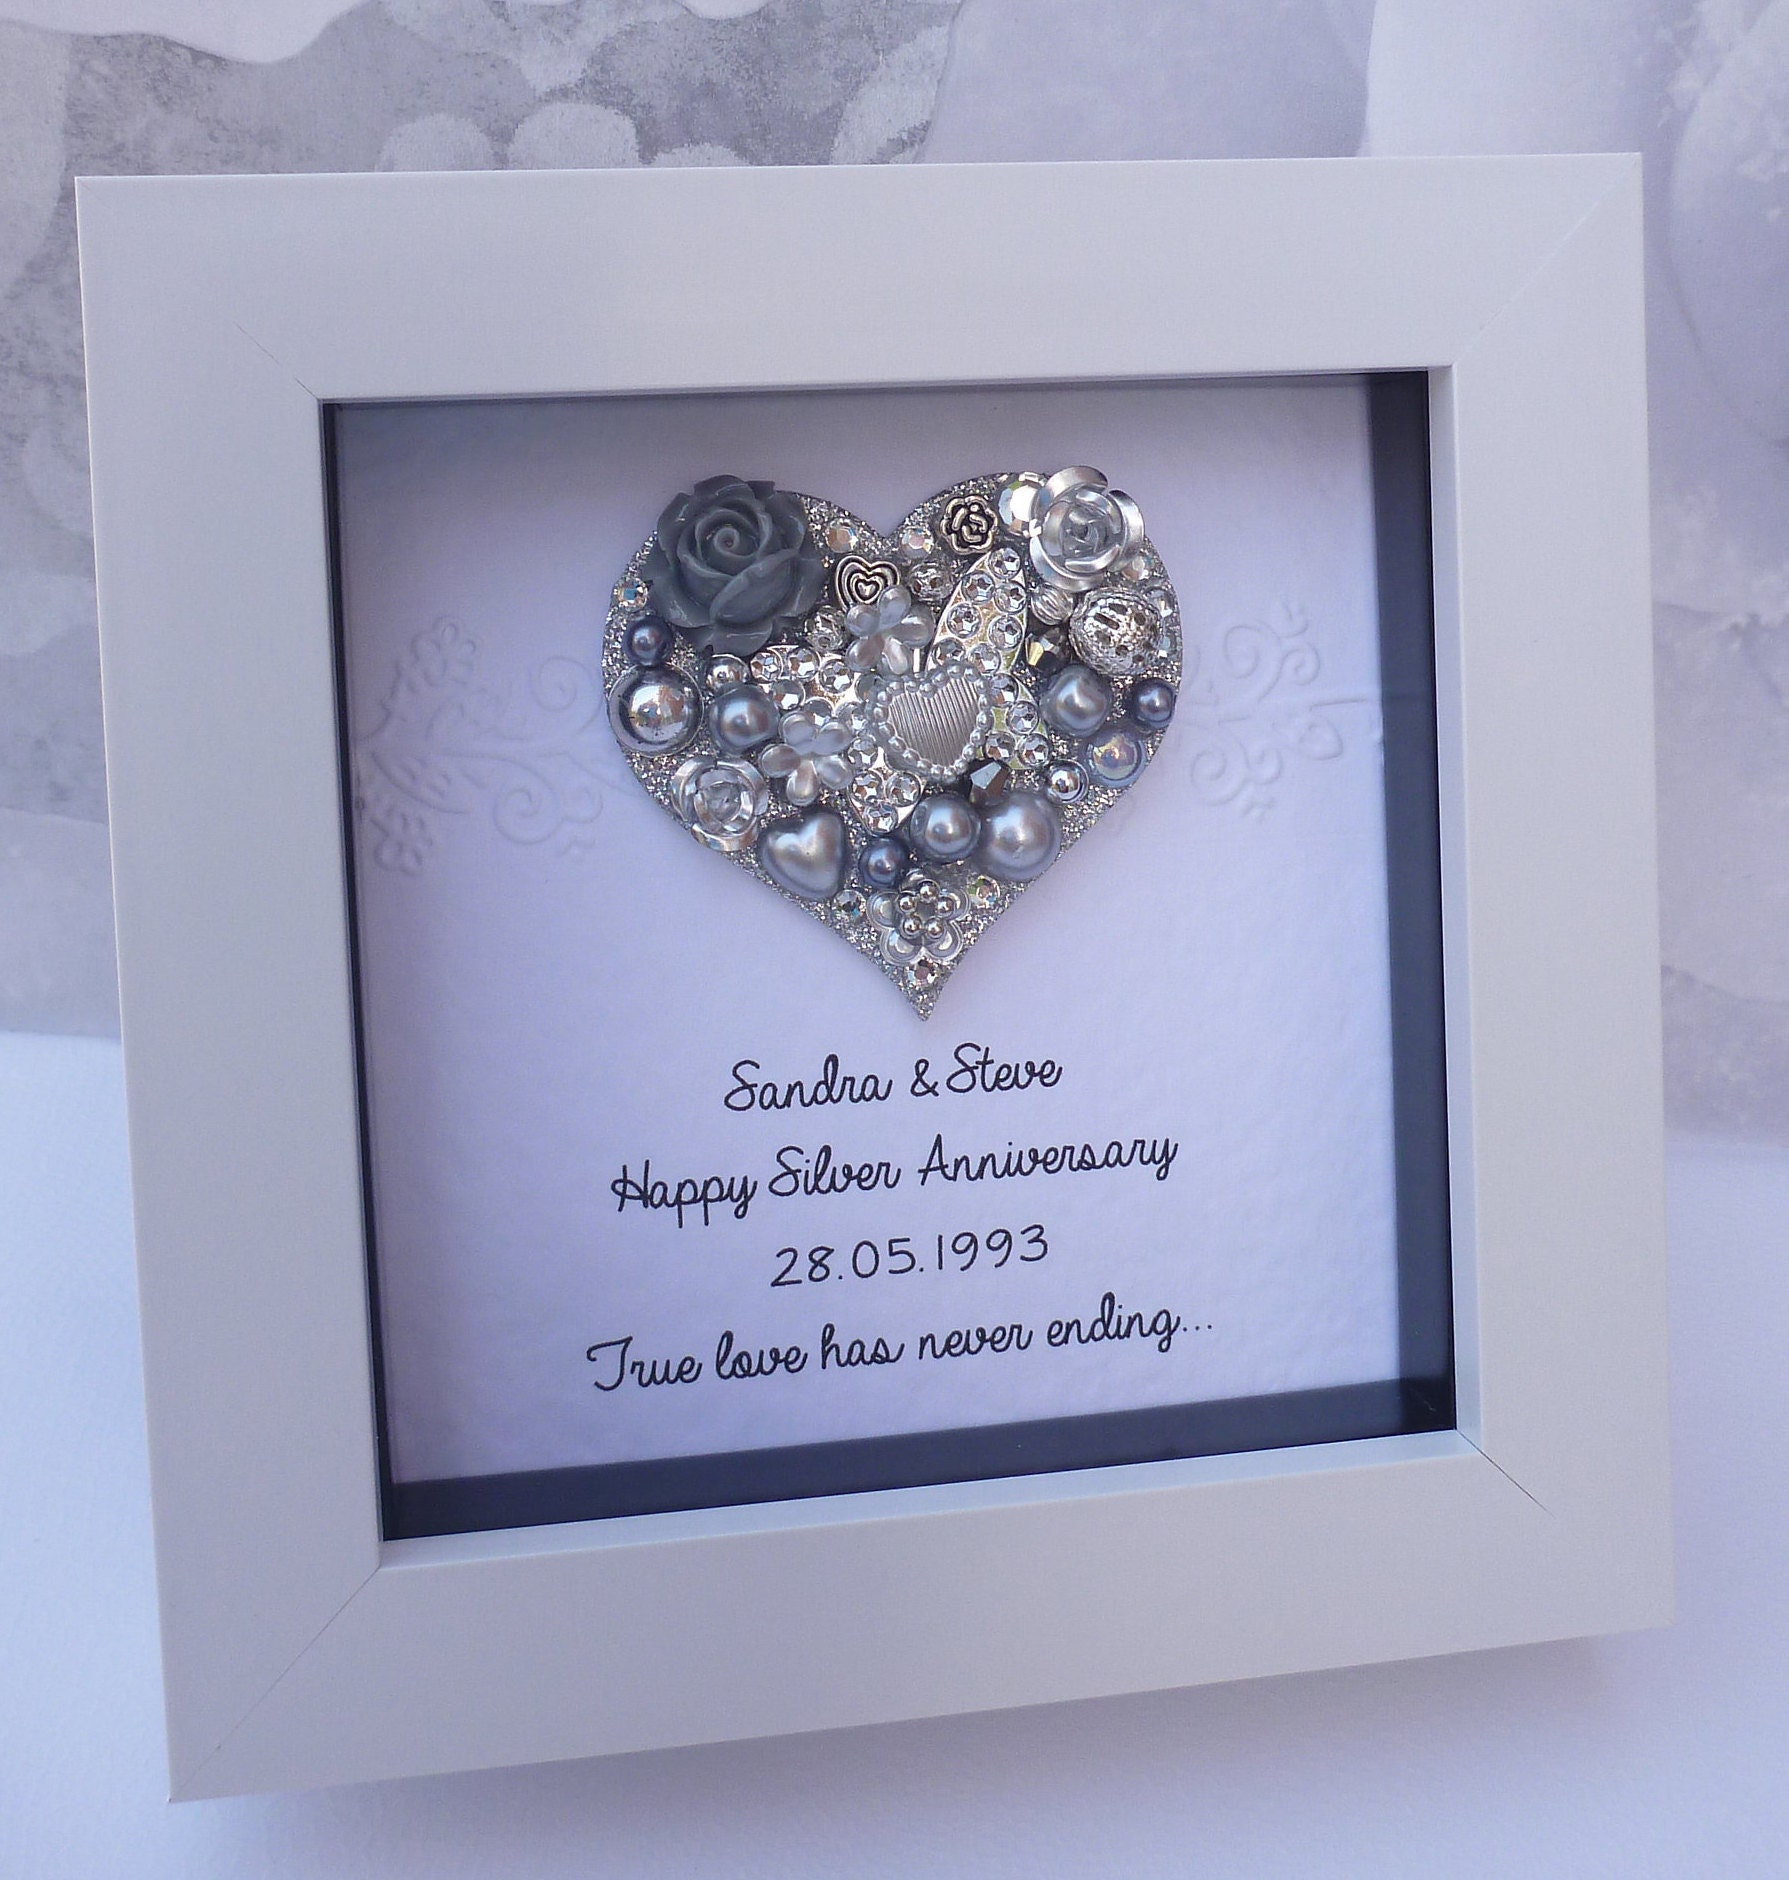 Ideas For 25th Wedding Anniversary Gift: 25th Anniversary Gift 25th Wedding Anniversary Gift25th